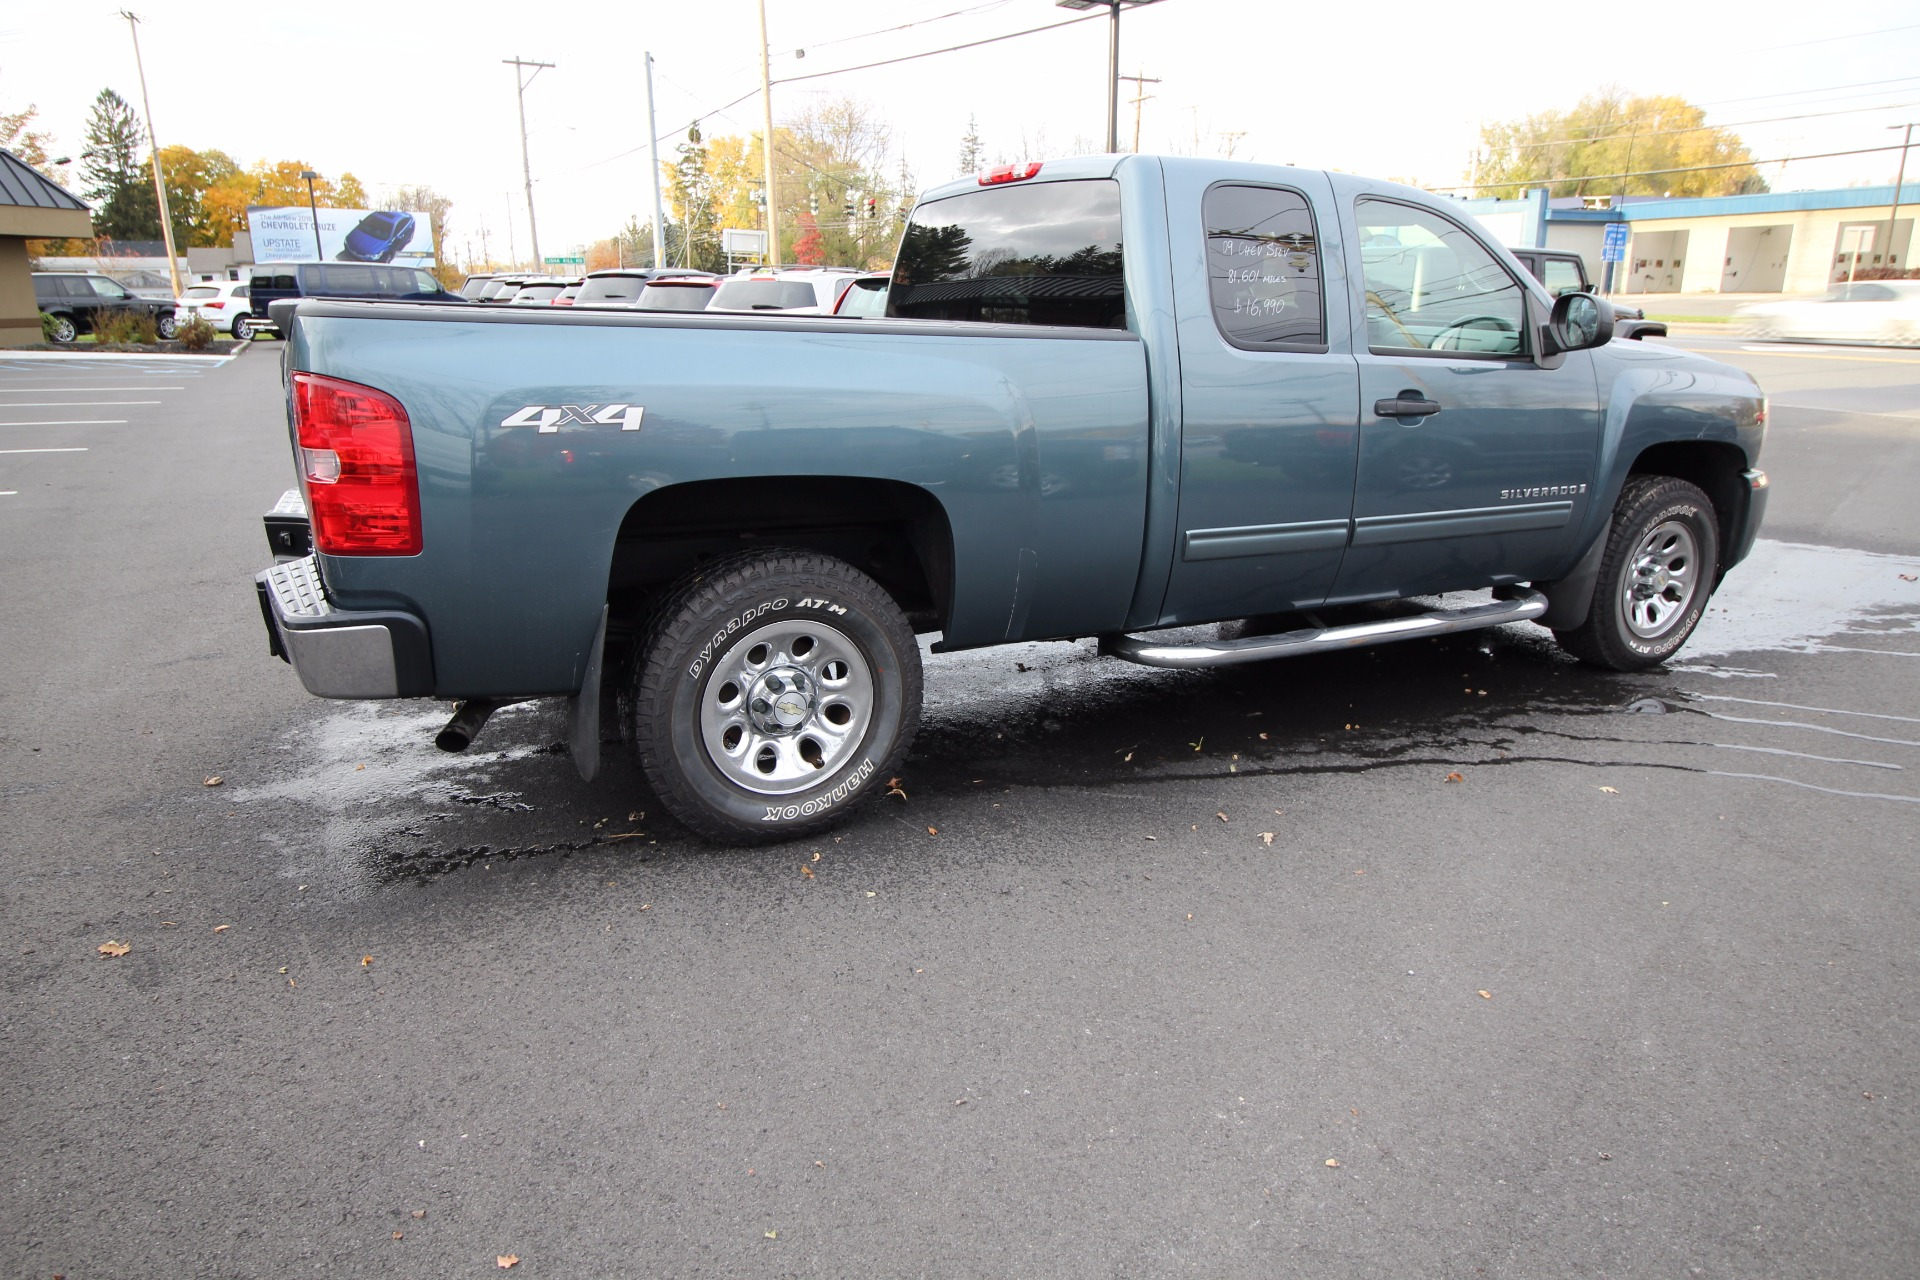 2009 chevrolet silverado 1500 work truck ext cab long box 4wd stock 16103 for sale near. Black Bedroom Furniture Sets. Home Design Ideas